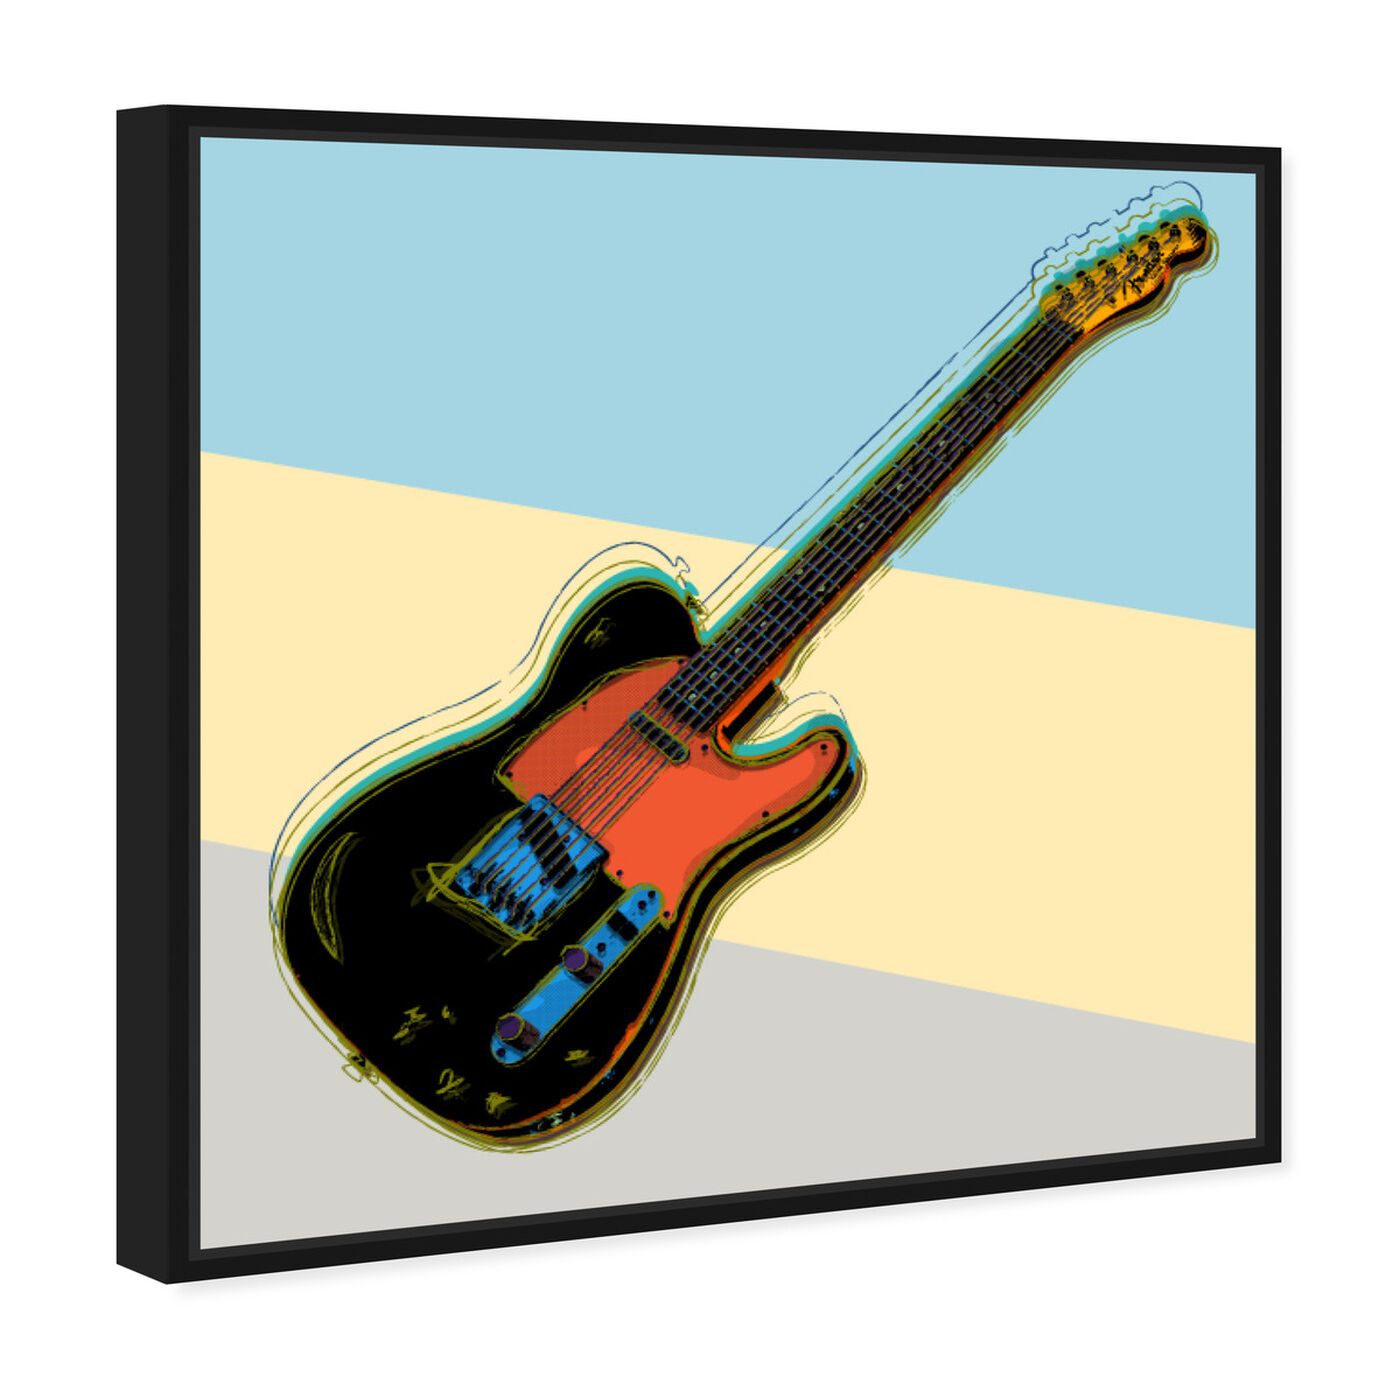 Angled view of Telecaster Visions featuring music and dance and music instruments art.